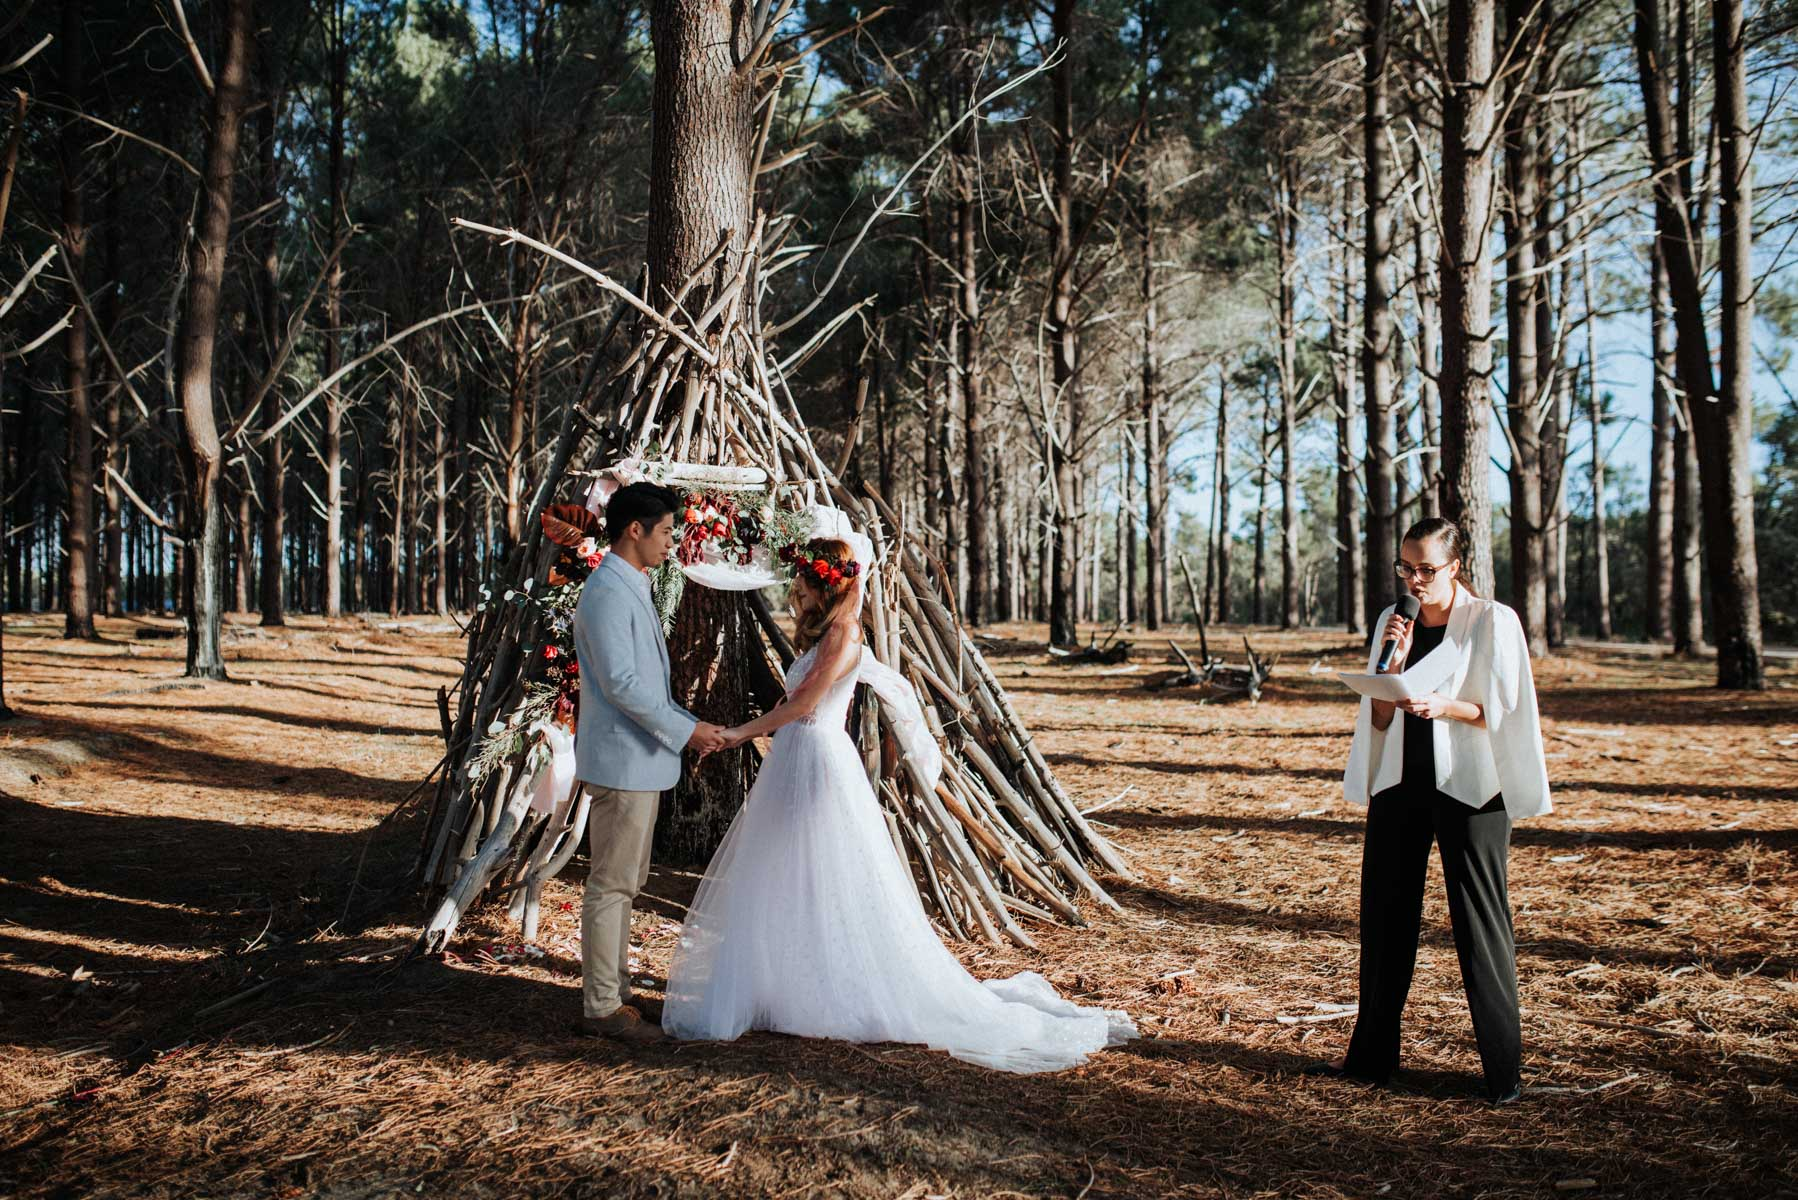 james-julene-forest-elopement-perth-8.JPG